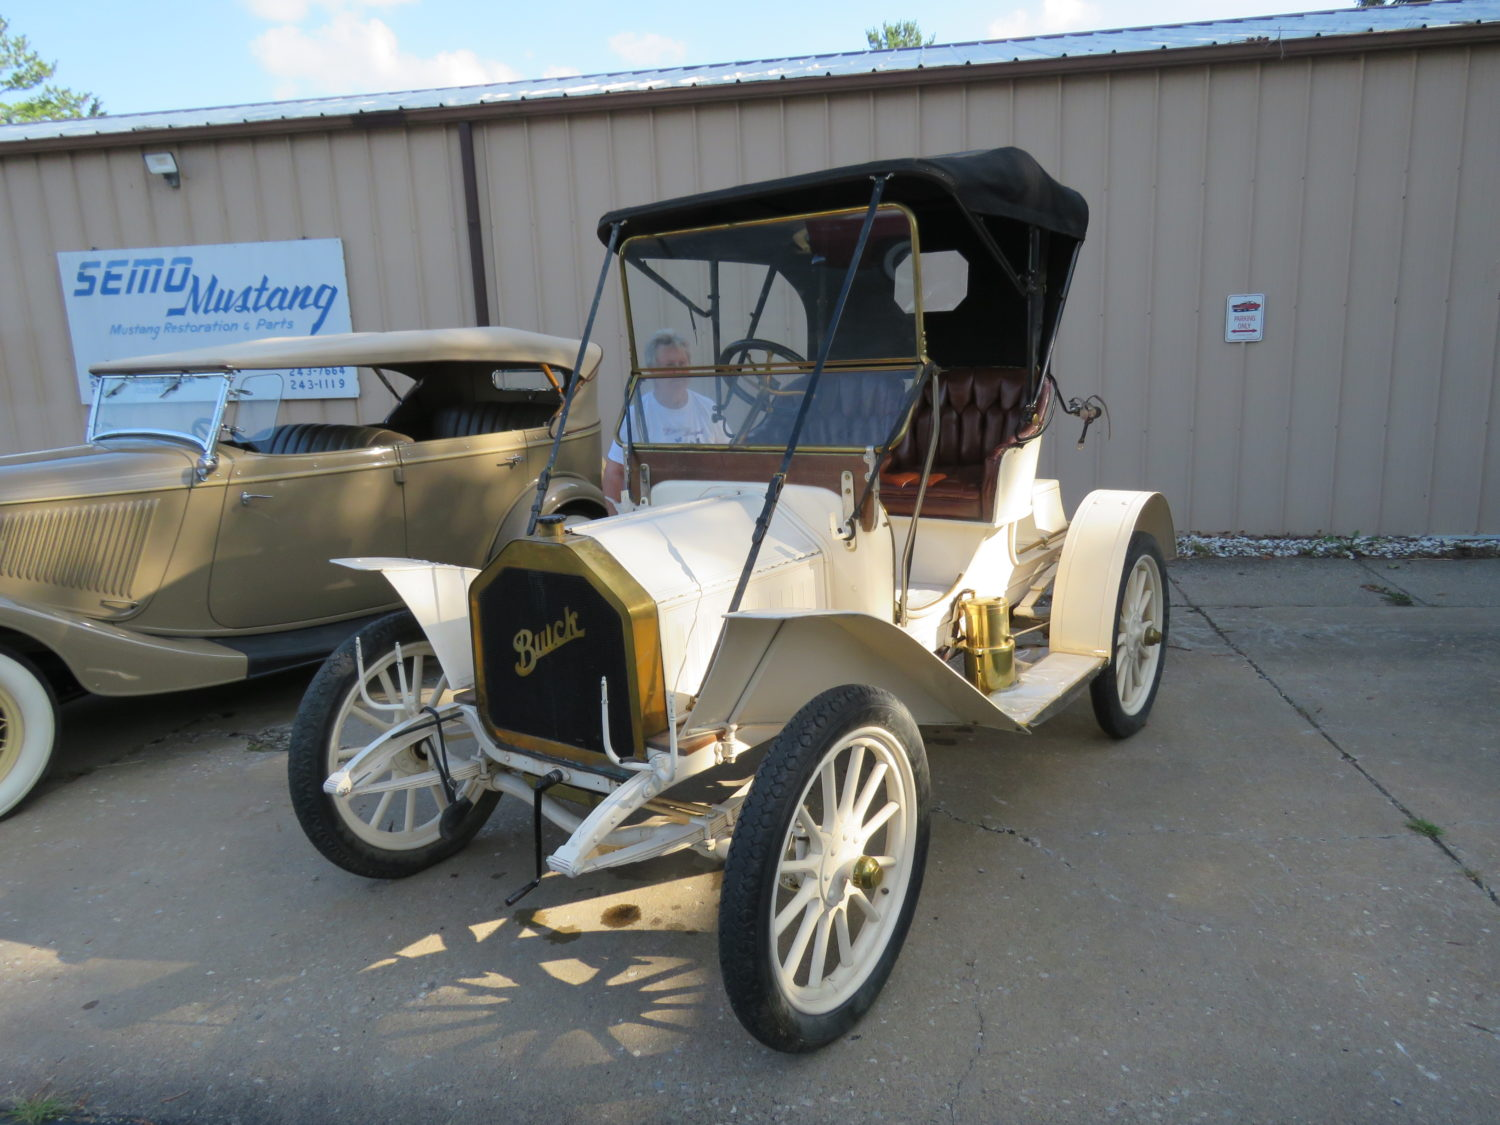 Collector Cars, Stationary Engines,Gas & Oil, Memorabilia & More – The McPherson Collection Auction - image 12